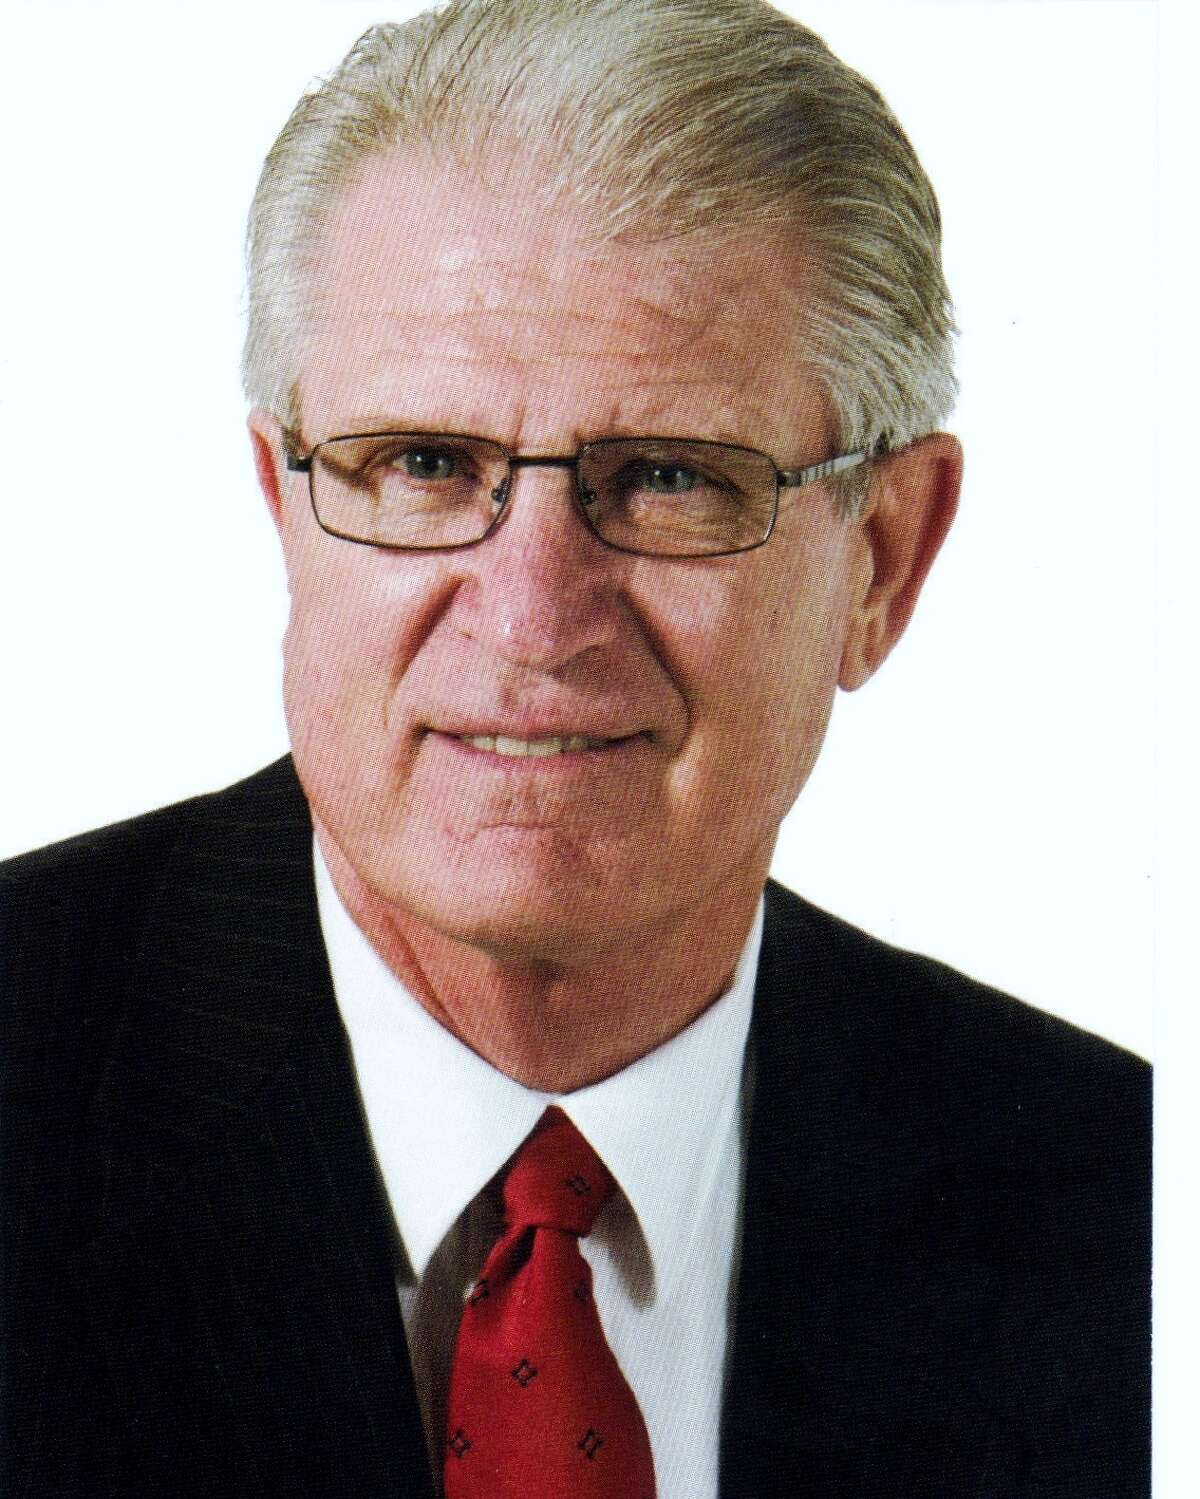 Robert Talton was a state representative from 1993 to 2009. (File photo)